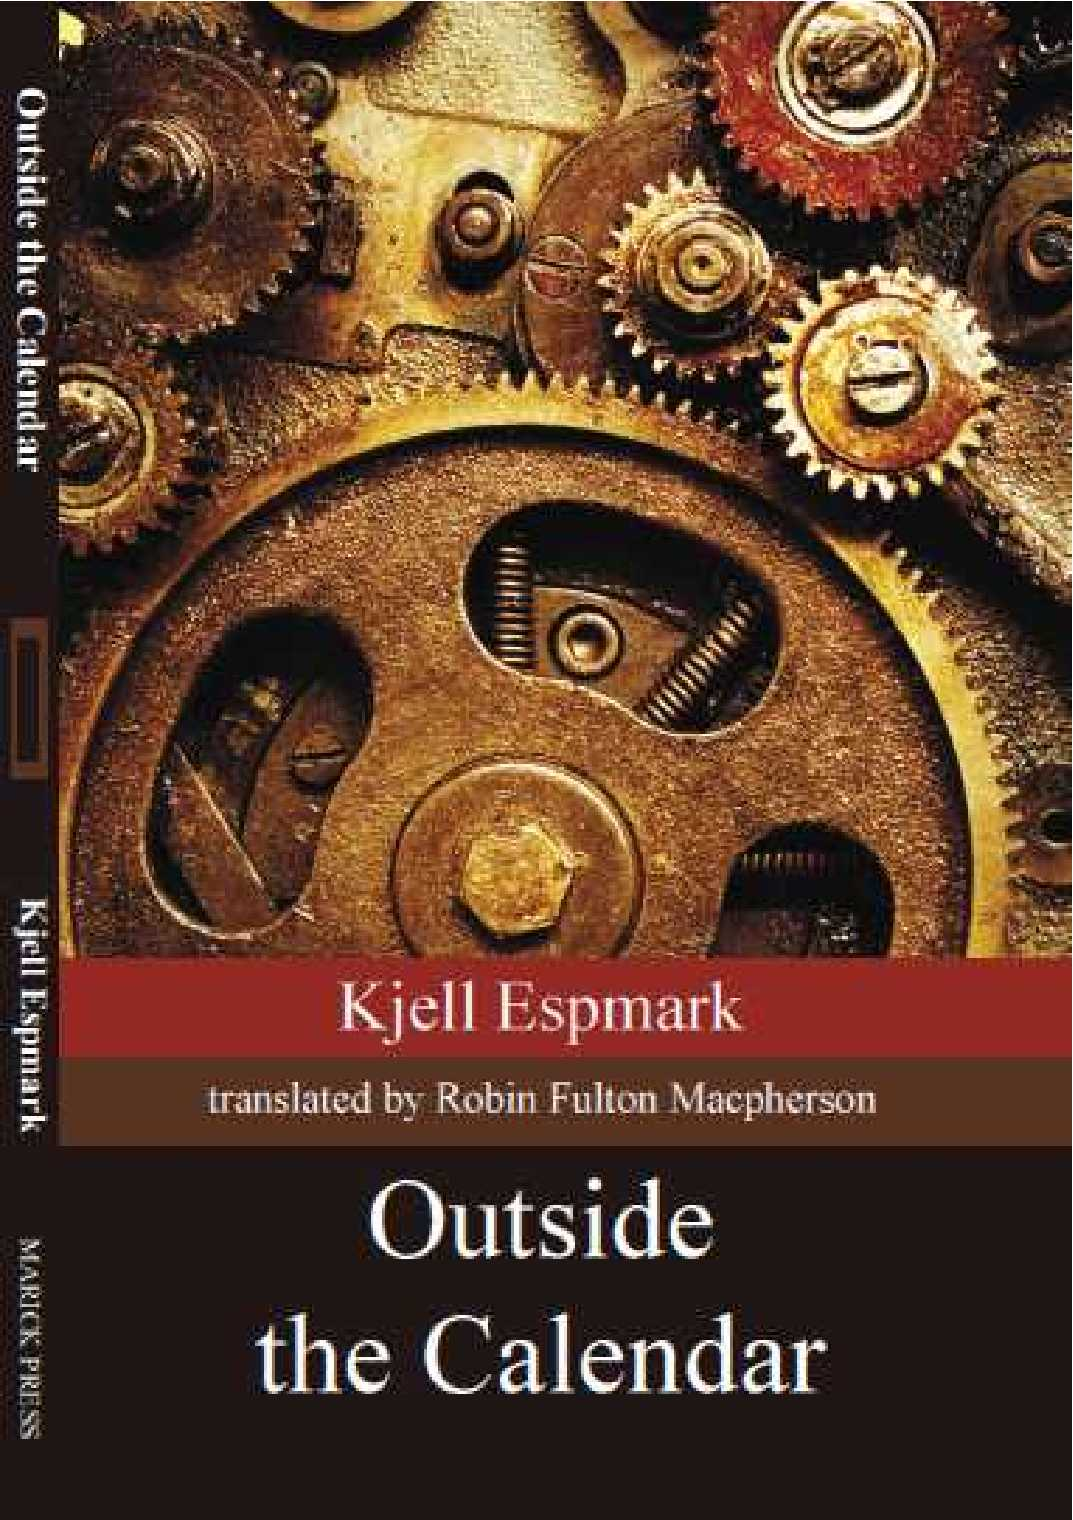 outside-the-calendar-kjell-espmark